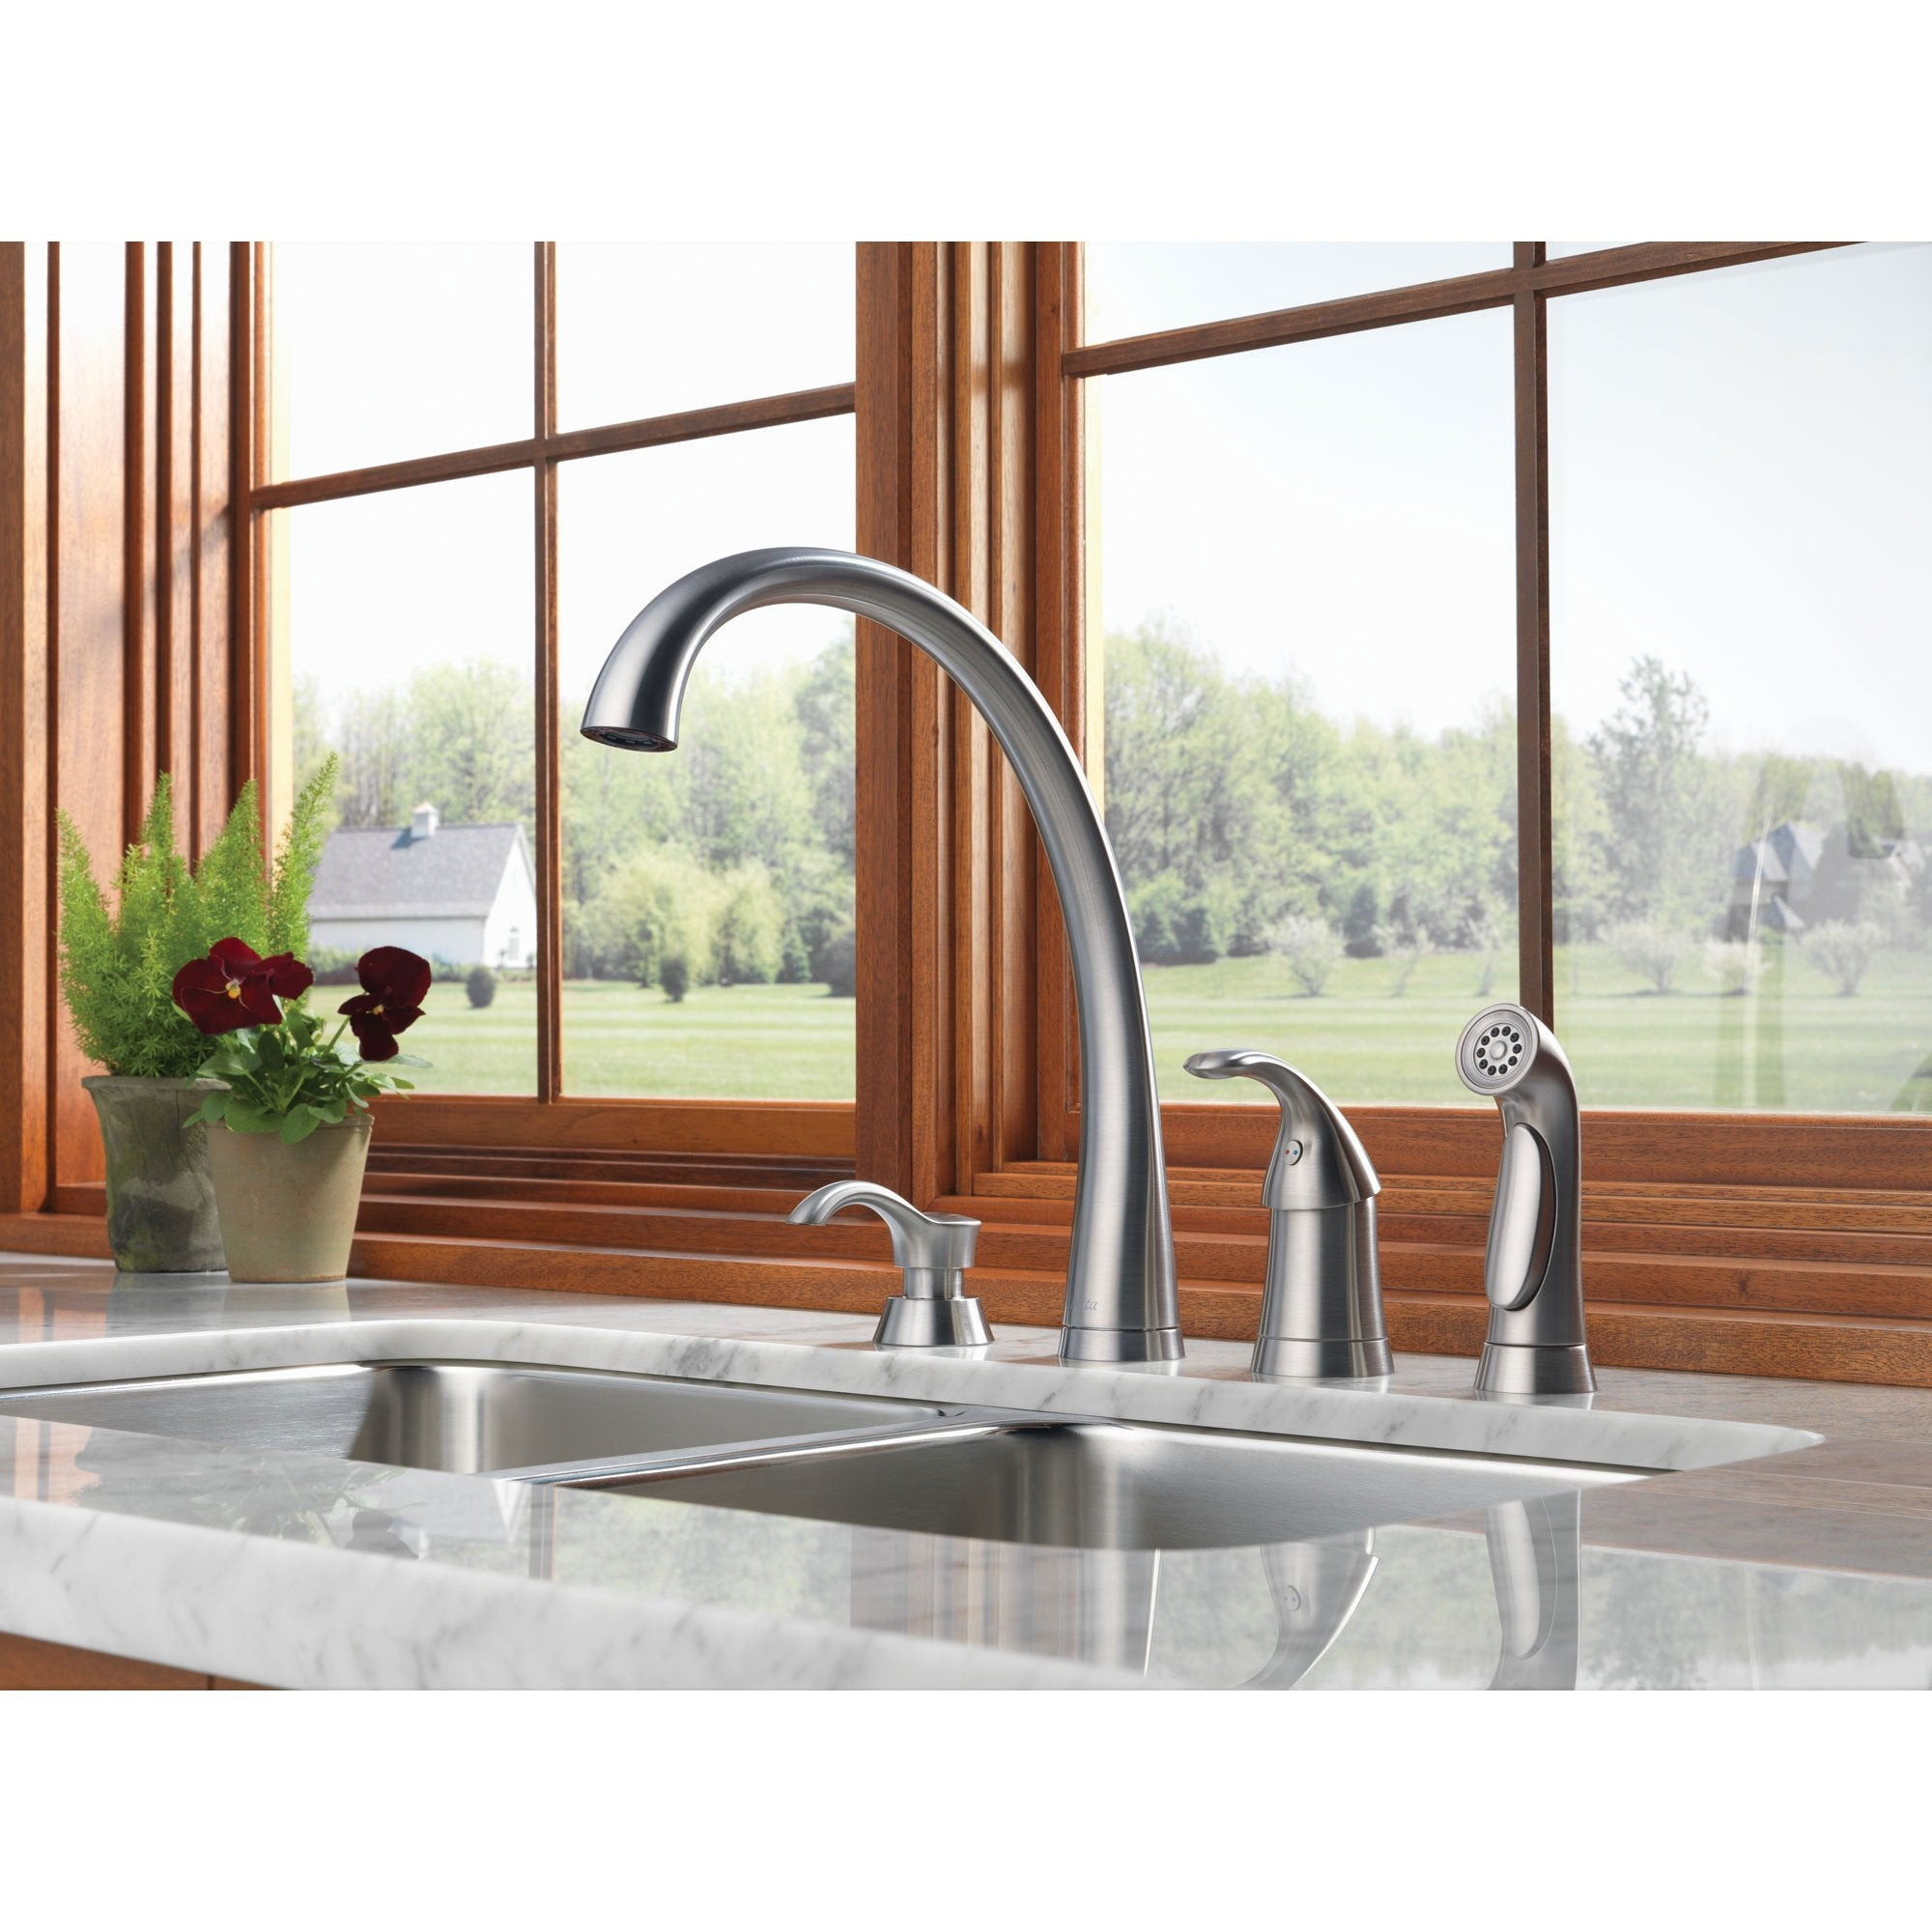 Delta Arctic Stainless Finish Modern Pilar Single Handle Kitchen Sink Faucet with Side Spray and Deck Mount Soap Dispenser Package D066CR